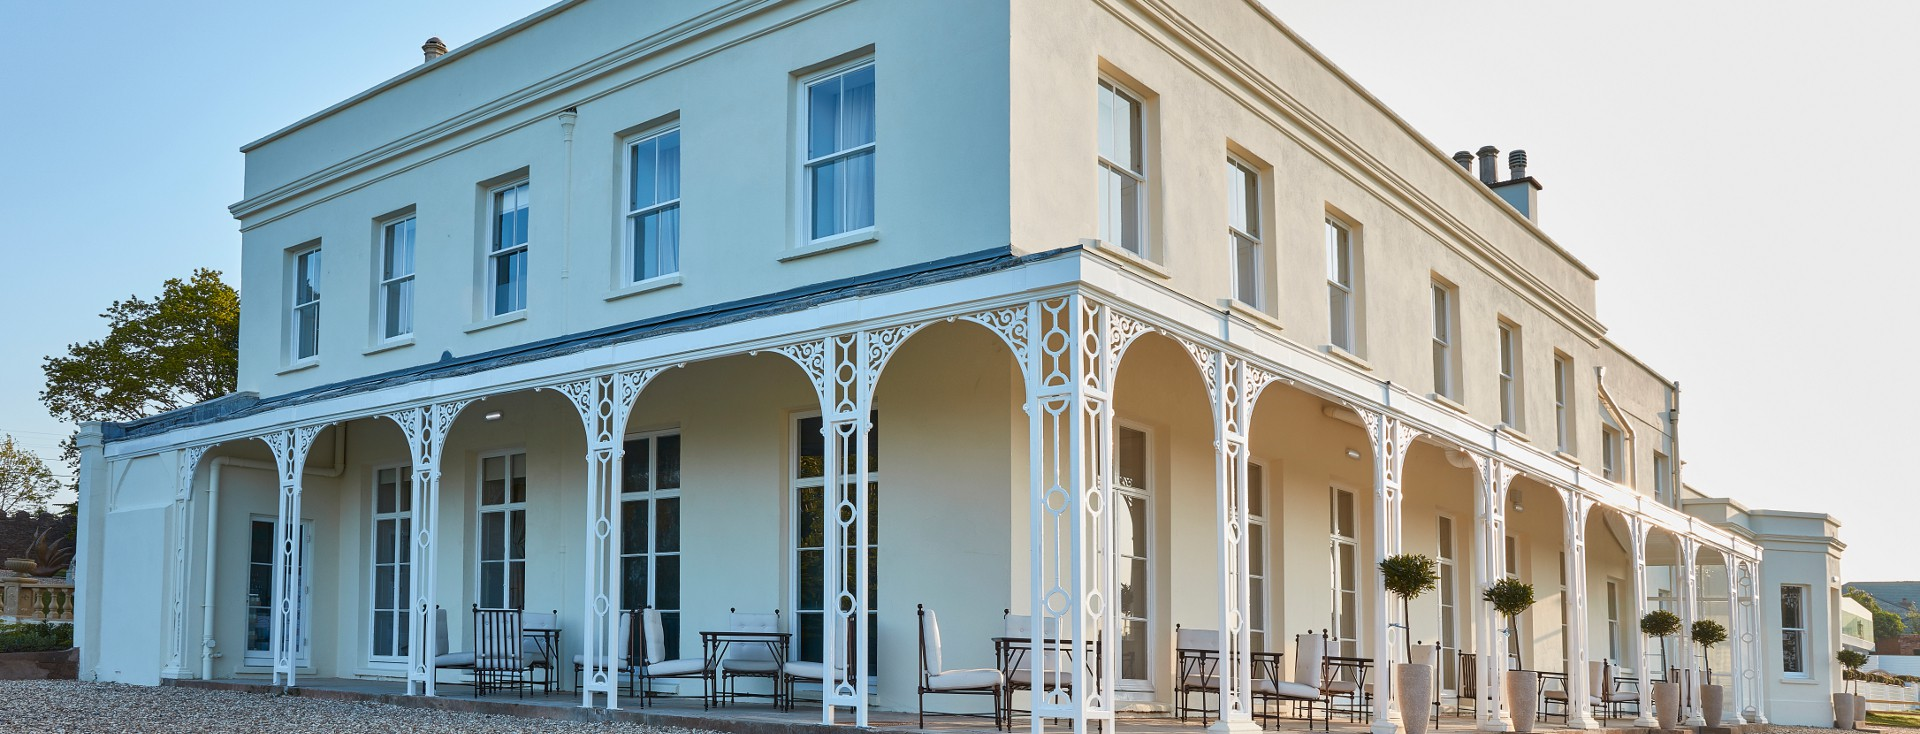 Lympstone Manor Hotel